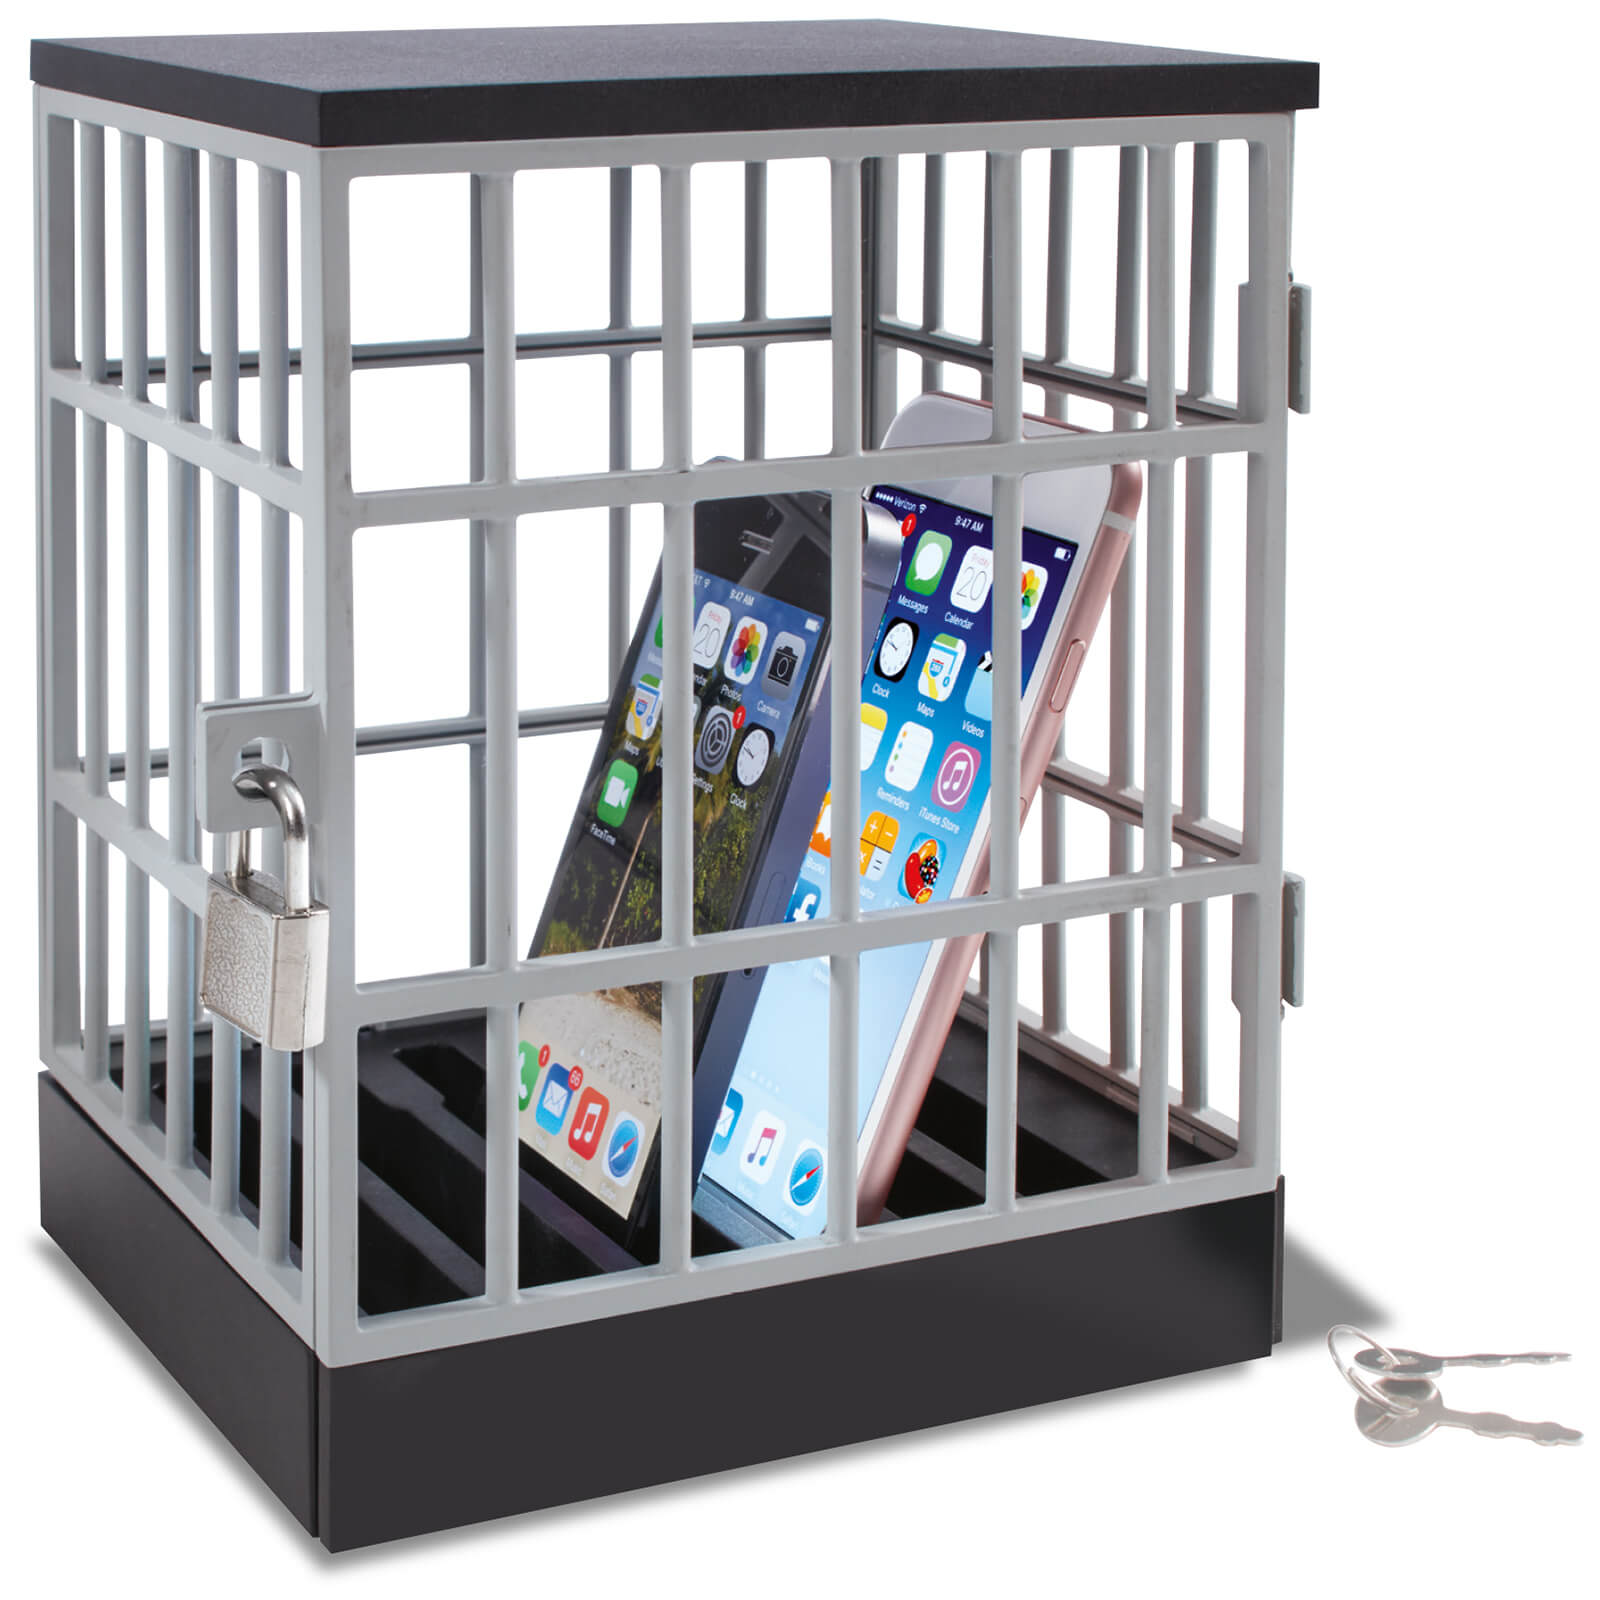 Image of Mobile Phone Jail